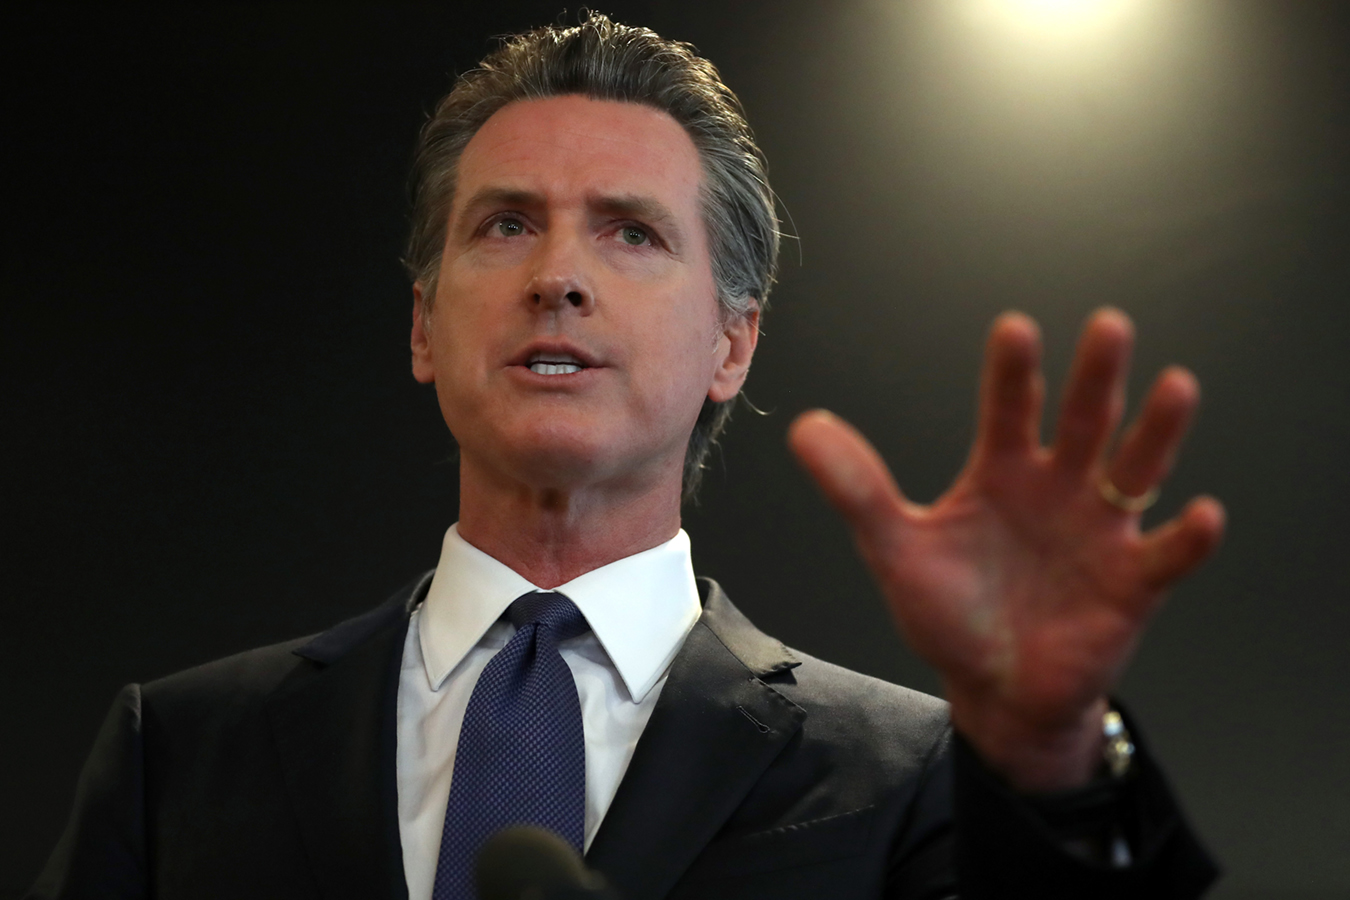 California Businesses Go From Simmer to Boil Over Newsom's Fine Dining